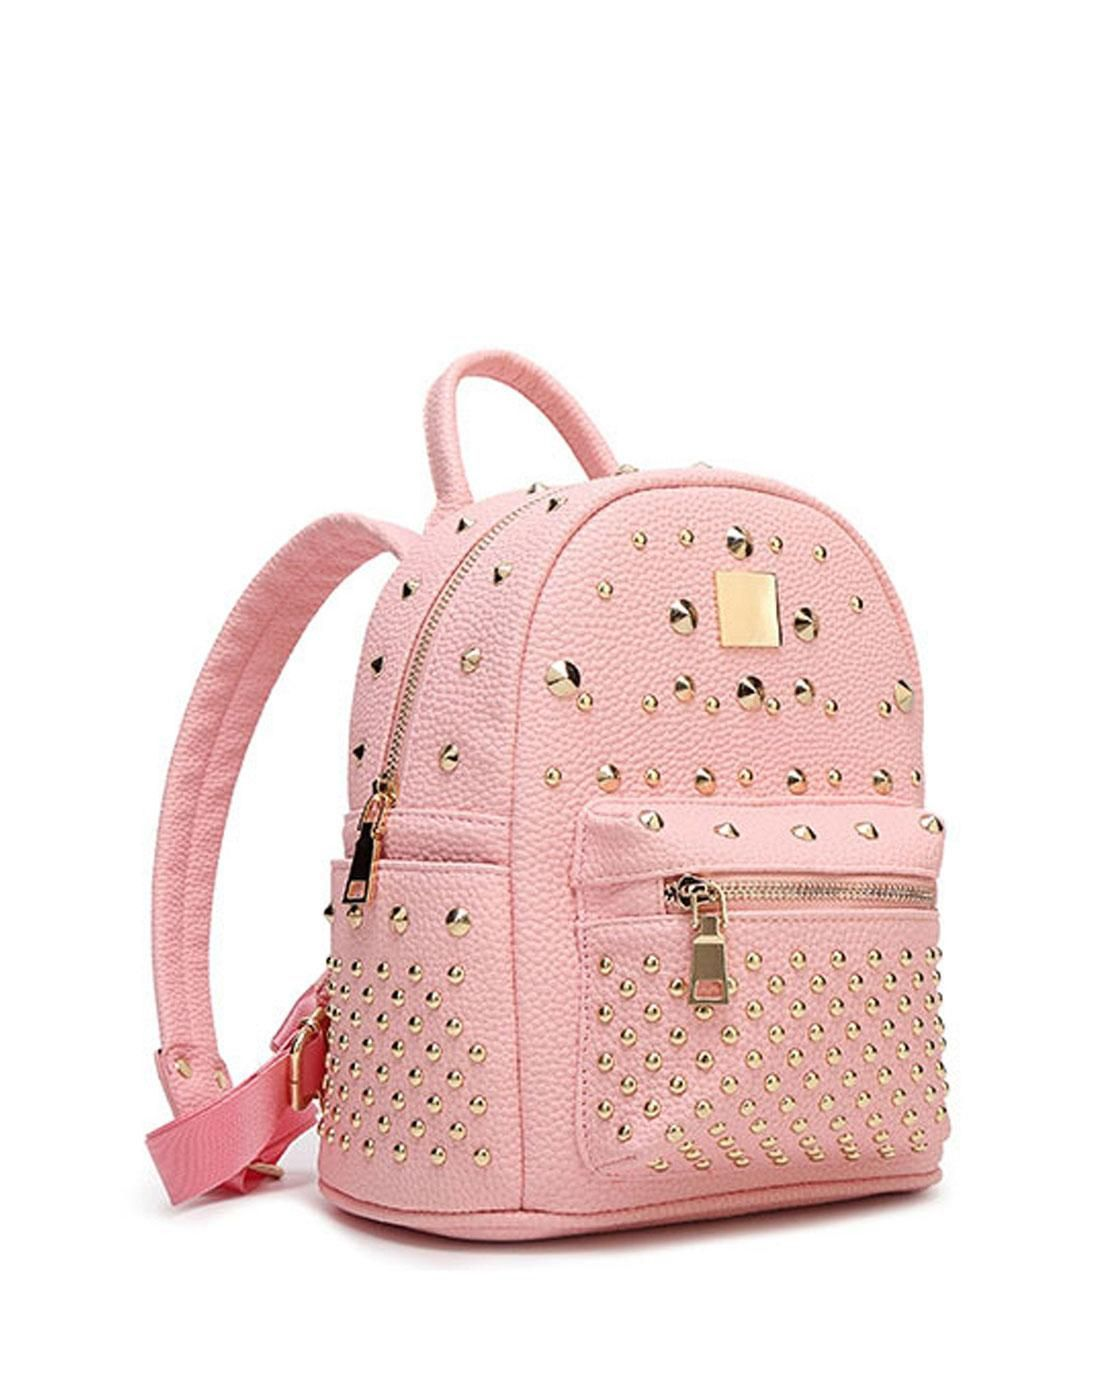 8a216c655fc5  AdoreWe  VIPme Backpacks - SVMONO Pink School Bags Backpacks for College  Girls - AdoreWe.com